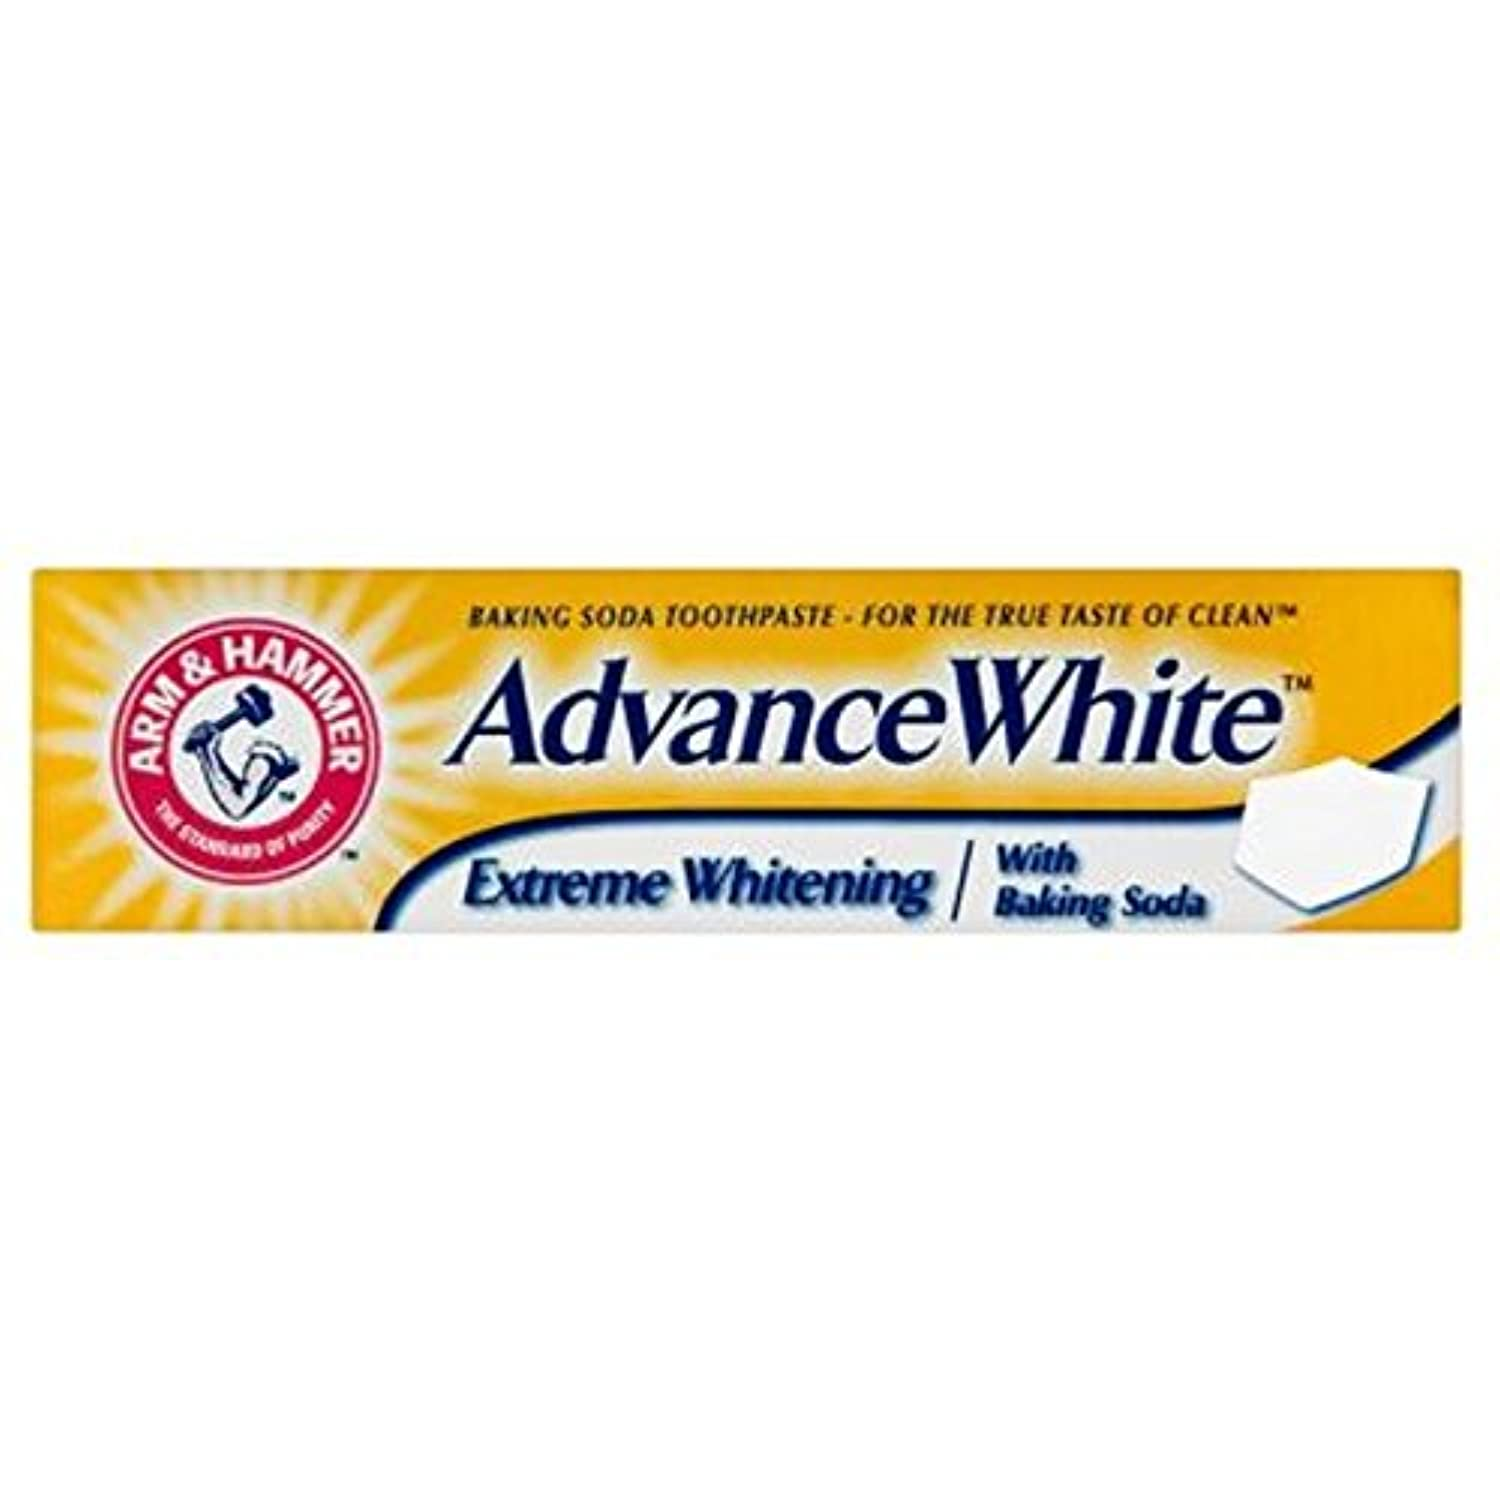 Arm & Hammer Advance White Extreme Whitening Baking Soda Toothpaste 75ml - 重曹歯磨き粉75ミリリットルをホワイトニングアーム&ハンマー事前白極端 (Arm & Hammer) [並行輸入品]